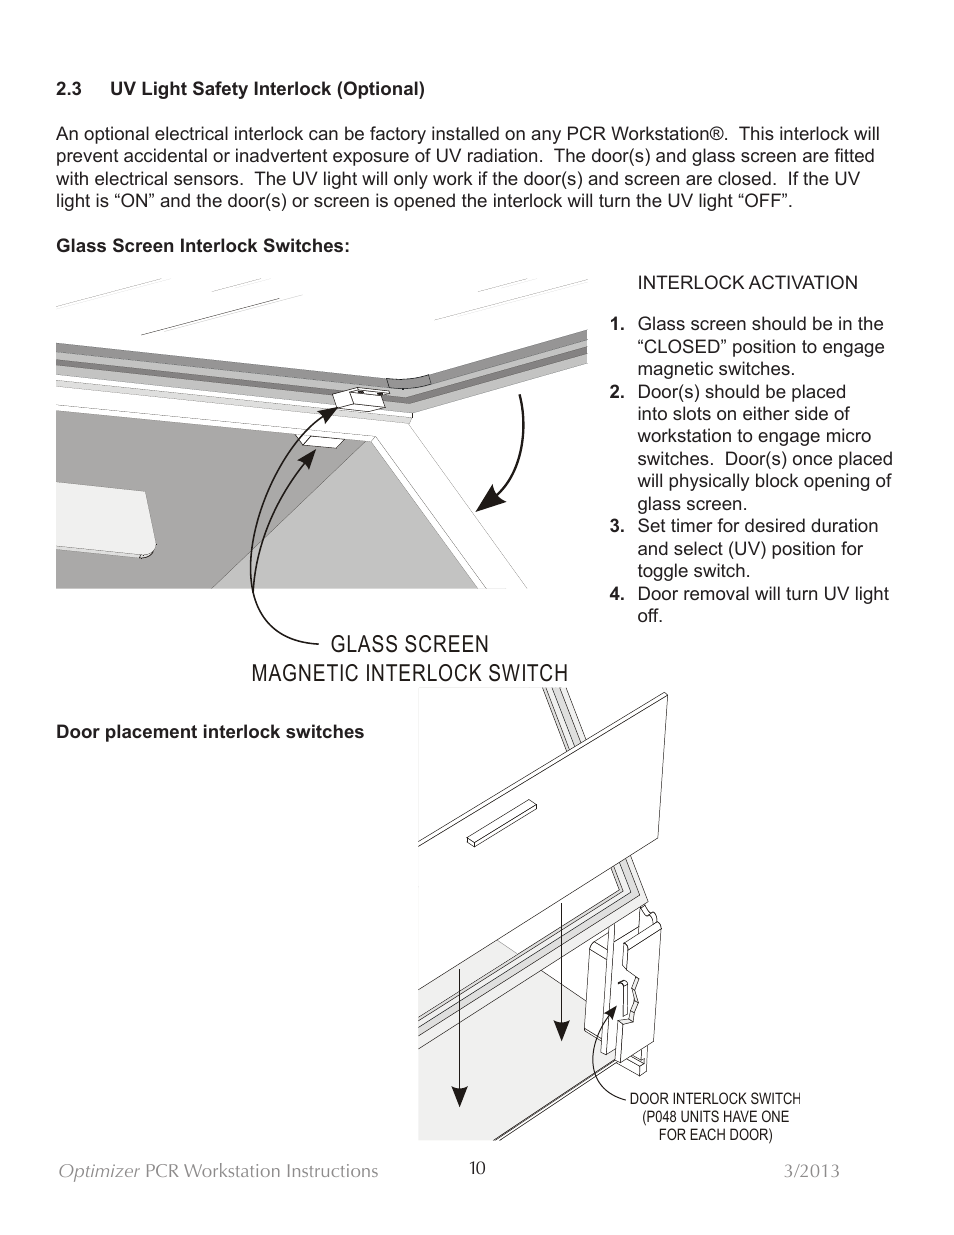 Glass screen magnetic interlock switch | C.B.S. Scientific PP-048-202-SS  User Manual | Page 11 / 21